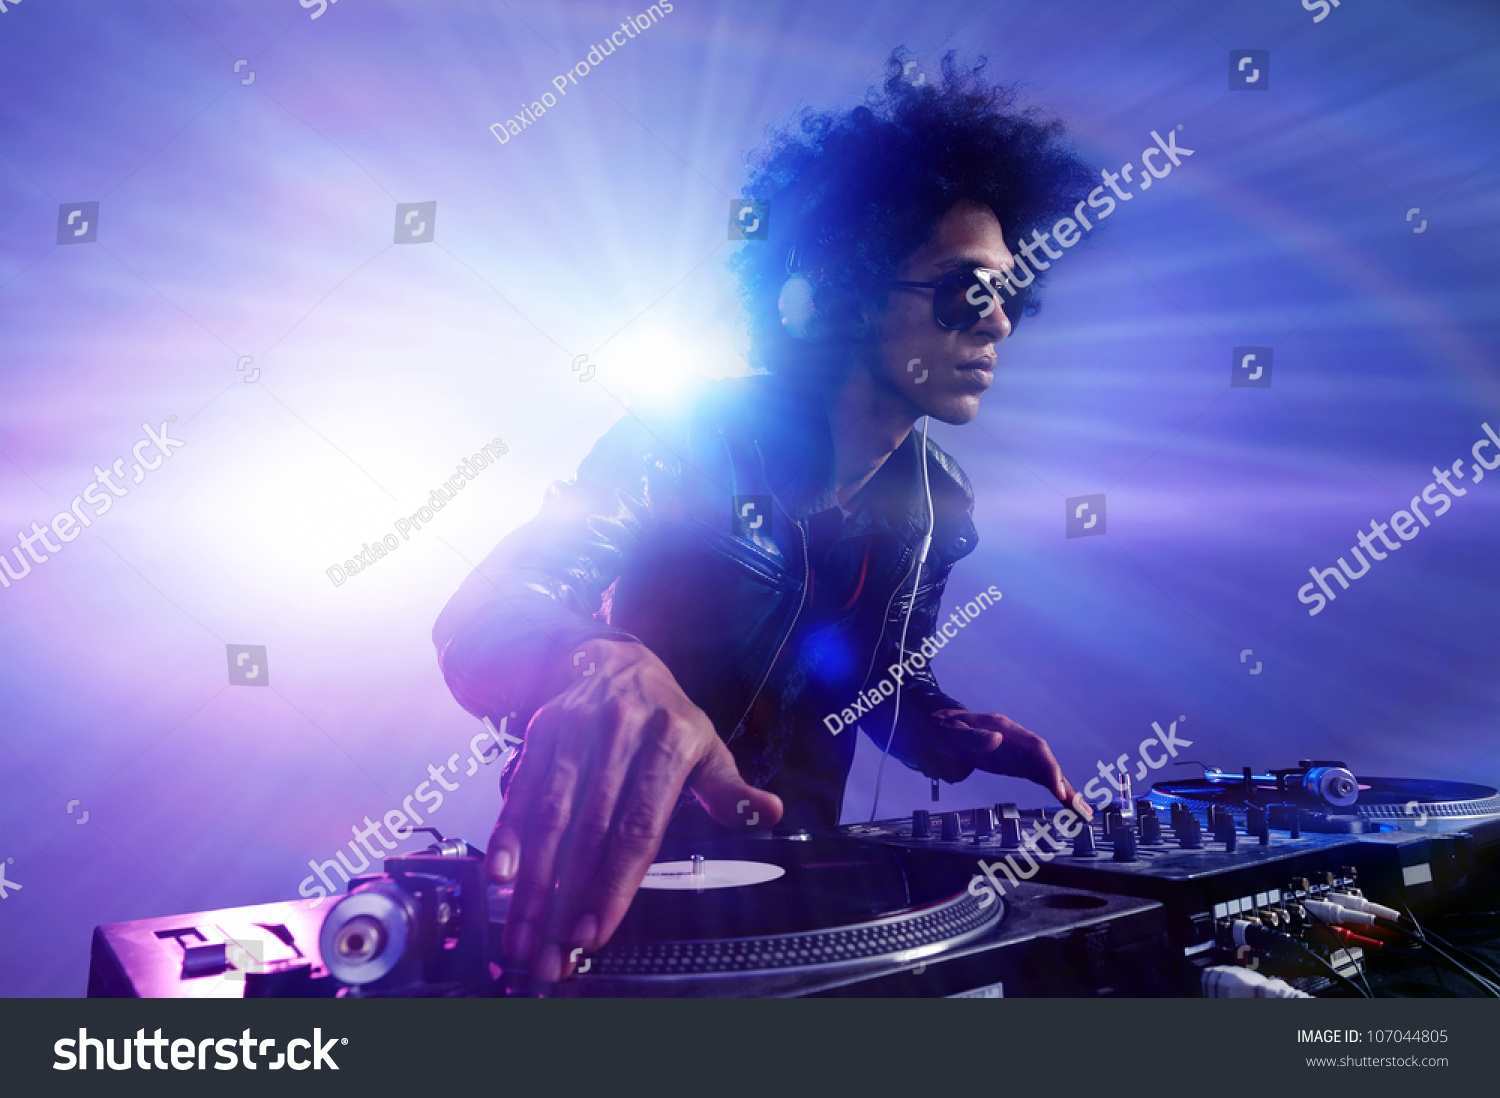 Club DJ with afro hairstyle playing mixing music on vinyl turntable at party wearing sunglasses with lens flare from nightlife lights. #107044805